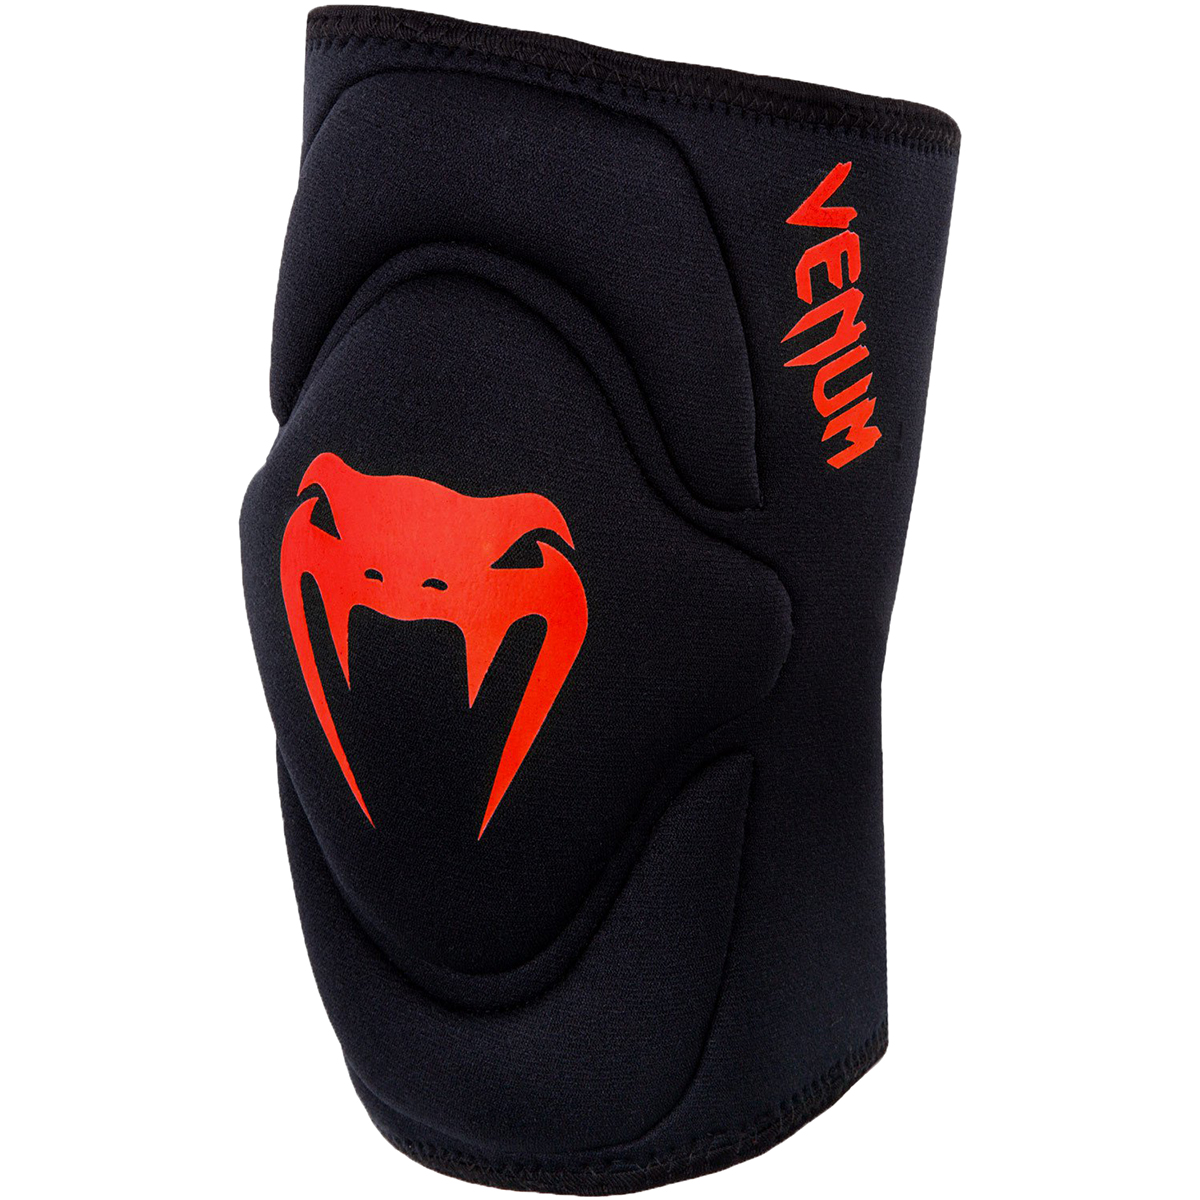 thumbnail 8 - Venum-Kontact-Gel-Shock-System-Protective-MMA-Training-Knee-Pads